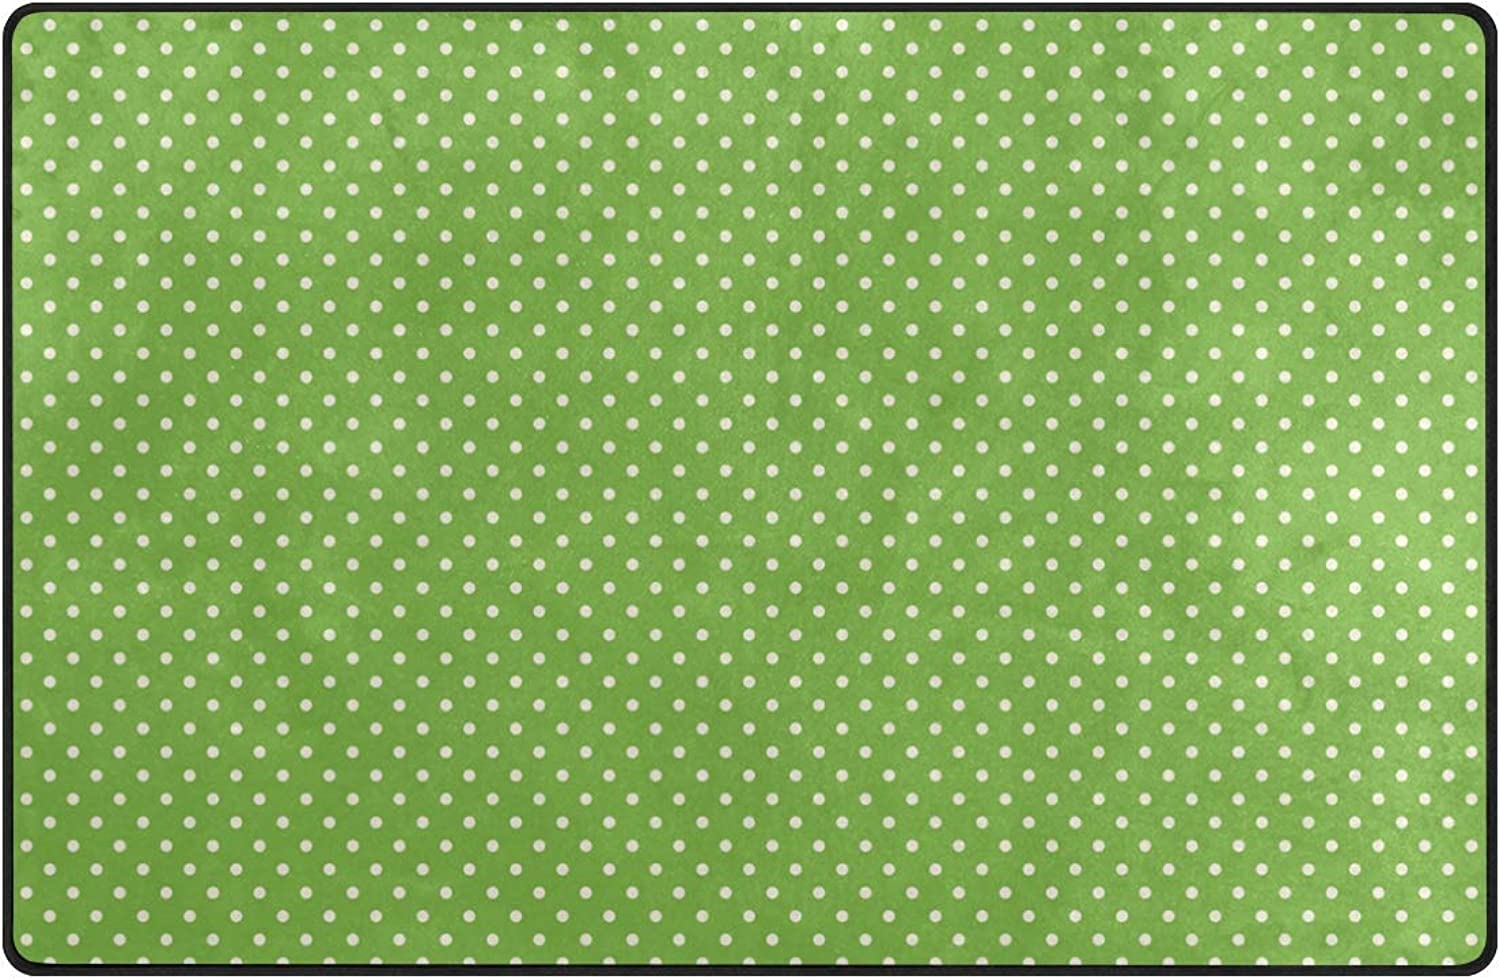 DEZIRO White Dots Green Background Floor mats for Home Entry Way Area Rug Doormat Carpet shoes Scraper Anti-Slip Washable